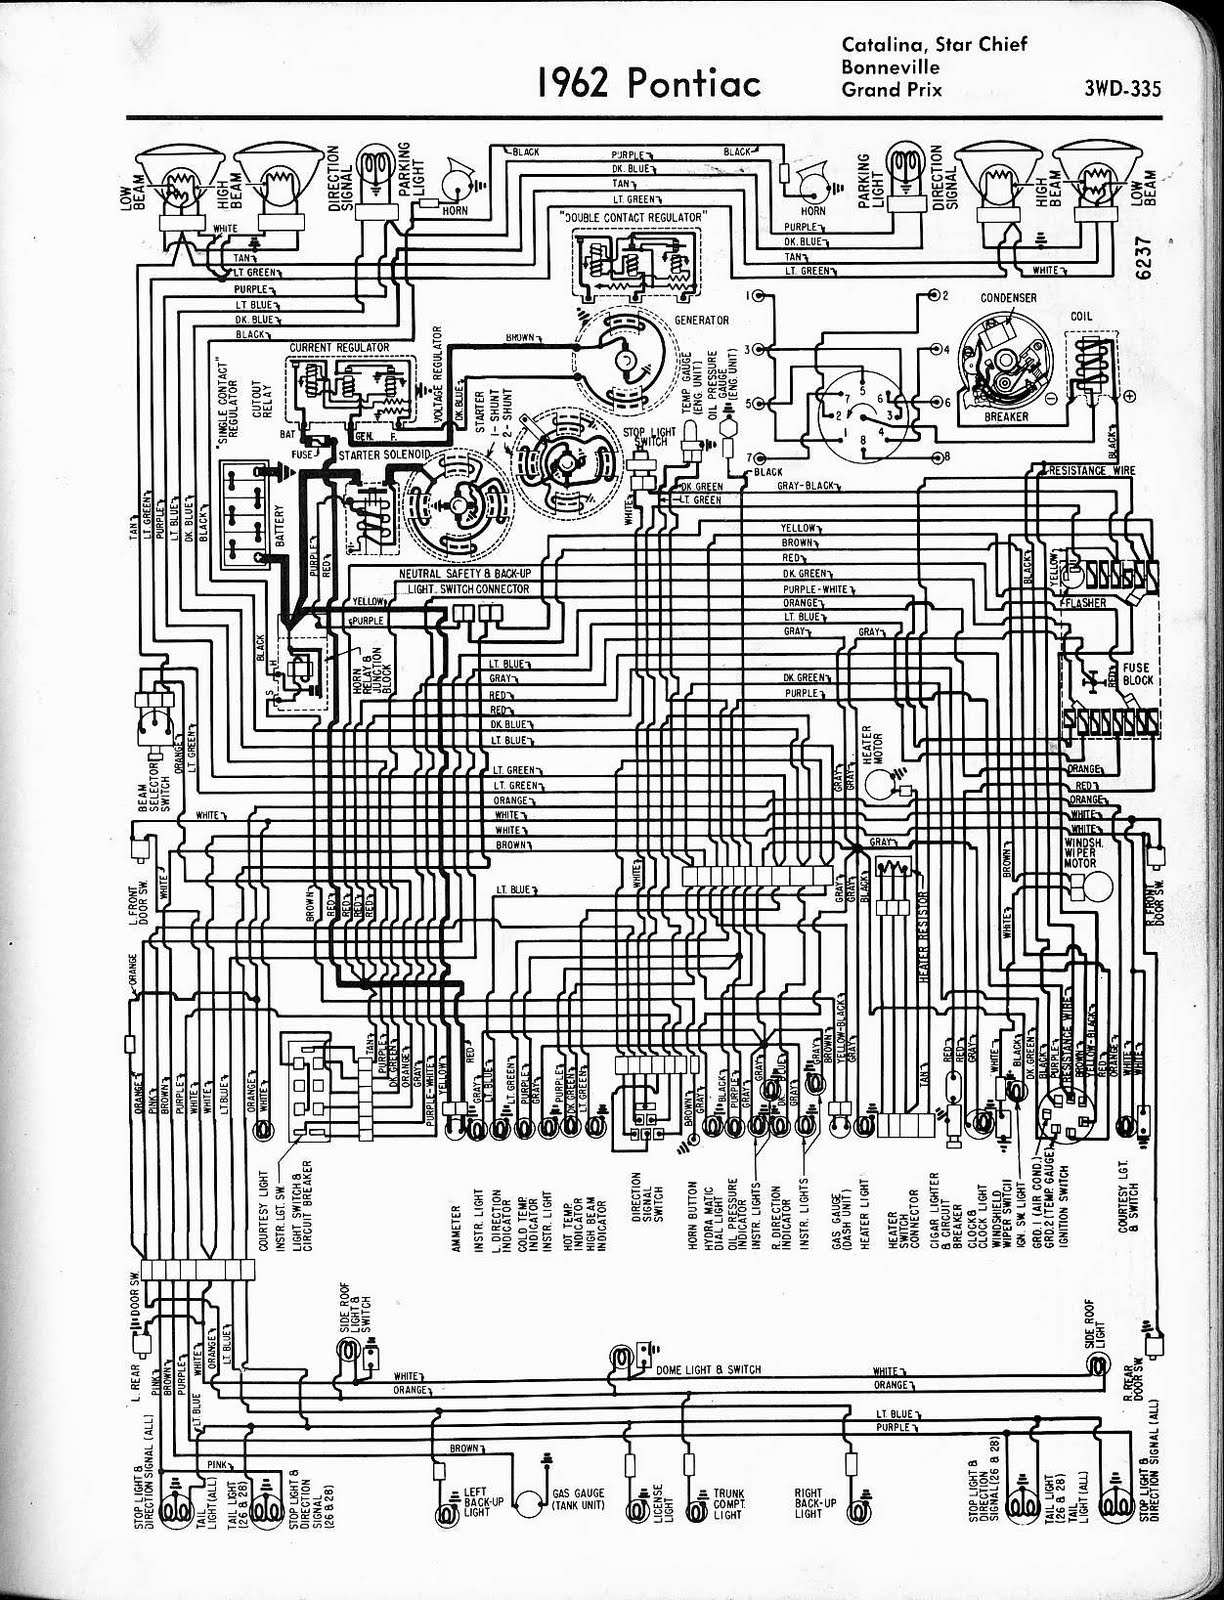 Oldsmobile Ignition Wiring Diagram on lincoln wiring diagrams, austin healey wiring diagrams, delorean wiring diagrams, triumph wiring diagrams, jeep wiring diagrams, excalibur wiring diagrams, gm wiring diagrams, studebaker wiring diagrams, imperial wiring diagrams, gem wiring diagrams, ktm wiring diagrams, plymouth wiring diagrams, honda wiring diagrams, dodge wiring diagrams, alfa romeo wiring diagrams, viking wiring diagrams, international wiring diagrams, mitsubishi wiring diagrams, mini cooper wiring diagrams, chrysler wiring diagrams,